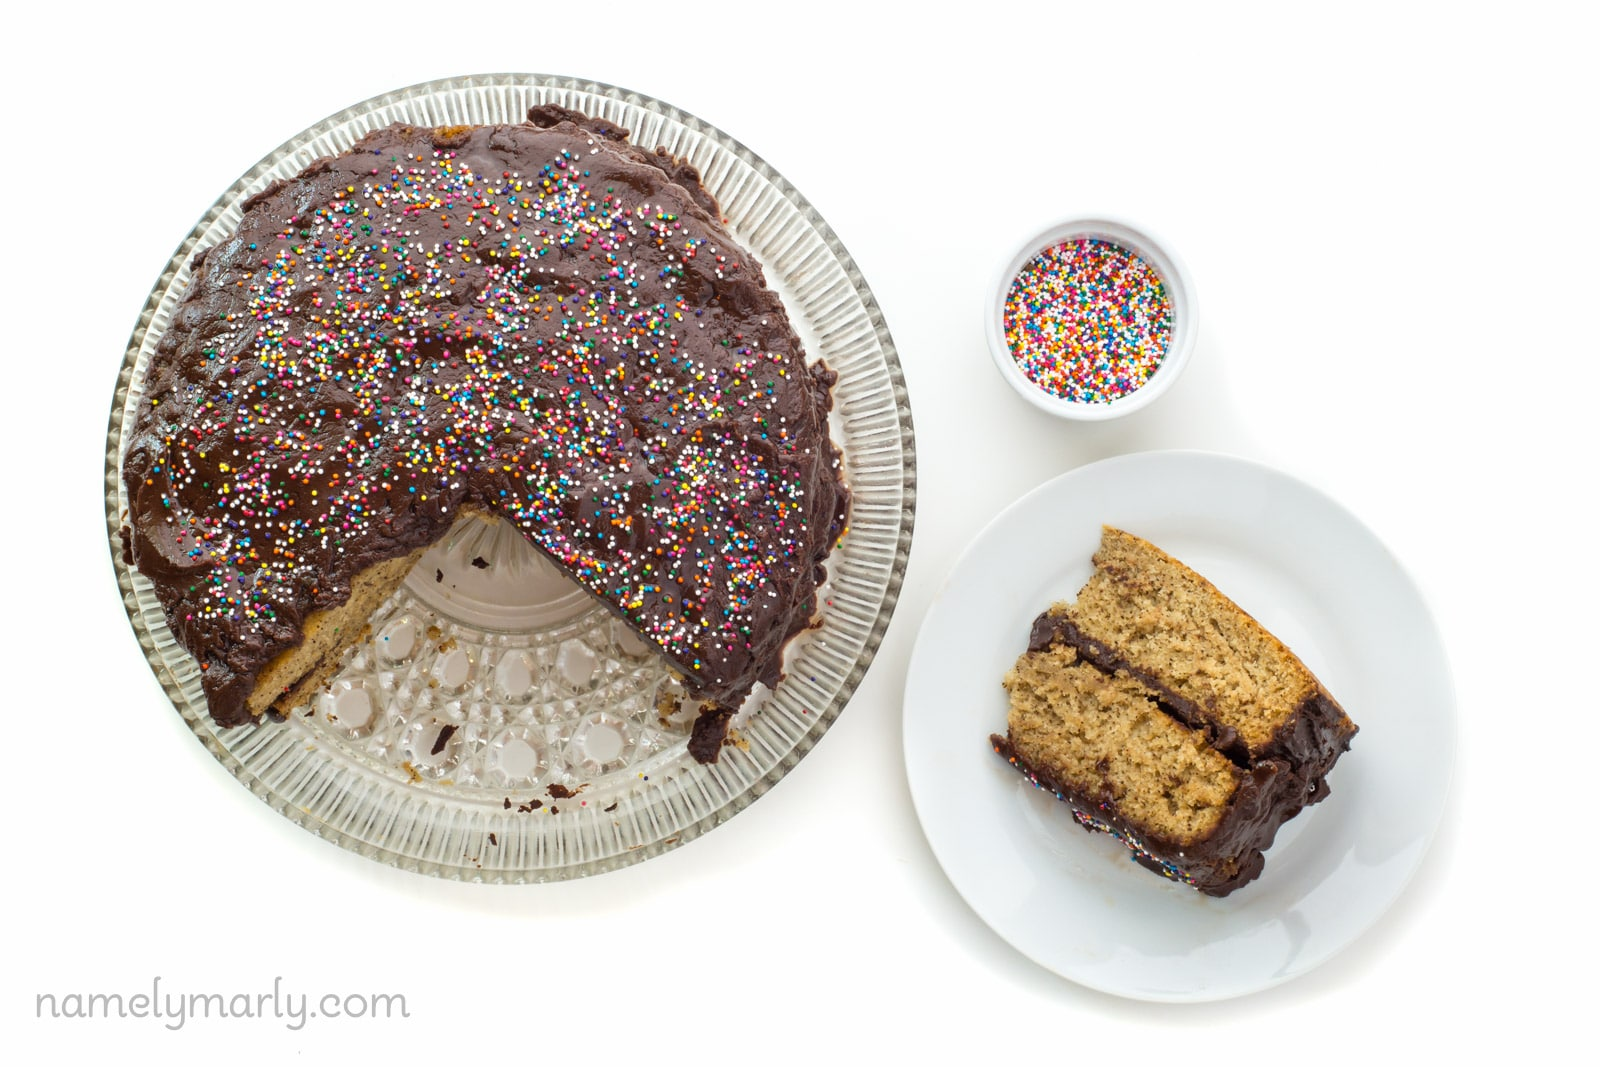 Looking down on a slice of vegan vanilla wacky cake on a plate beside the whole cake with a few slices cut out. A bowl of sprinkles sits beside the plate.